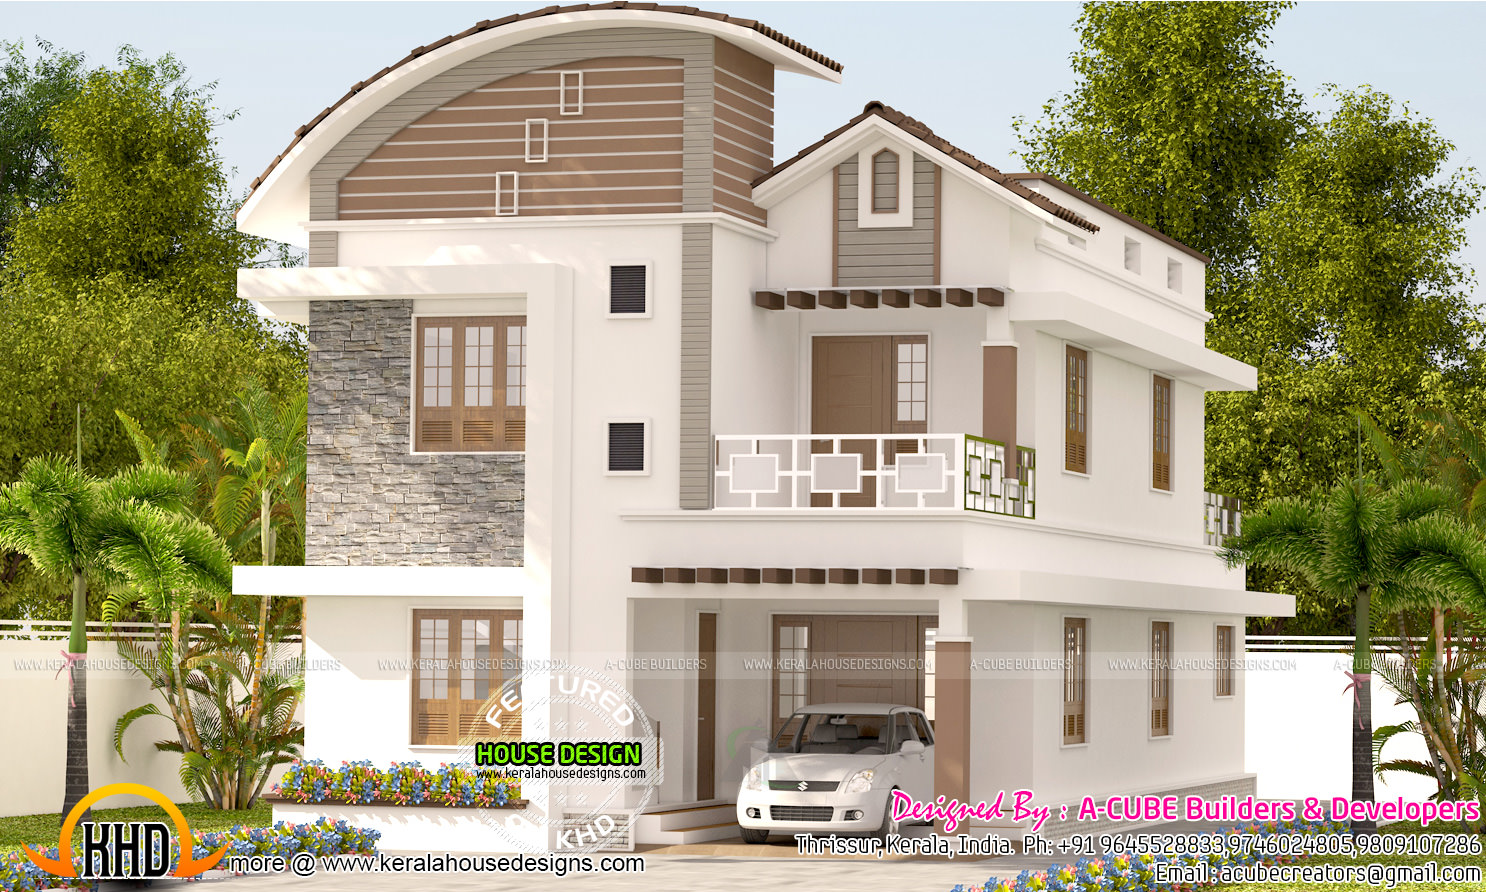 Curved roof mix 4 bedroom house kerala home design and for Curved roof house plans